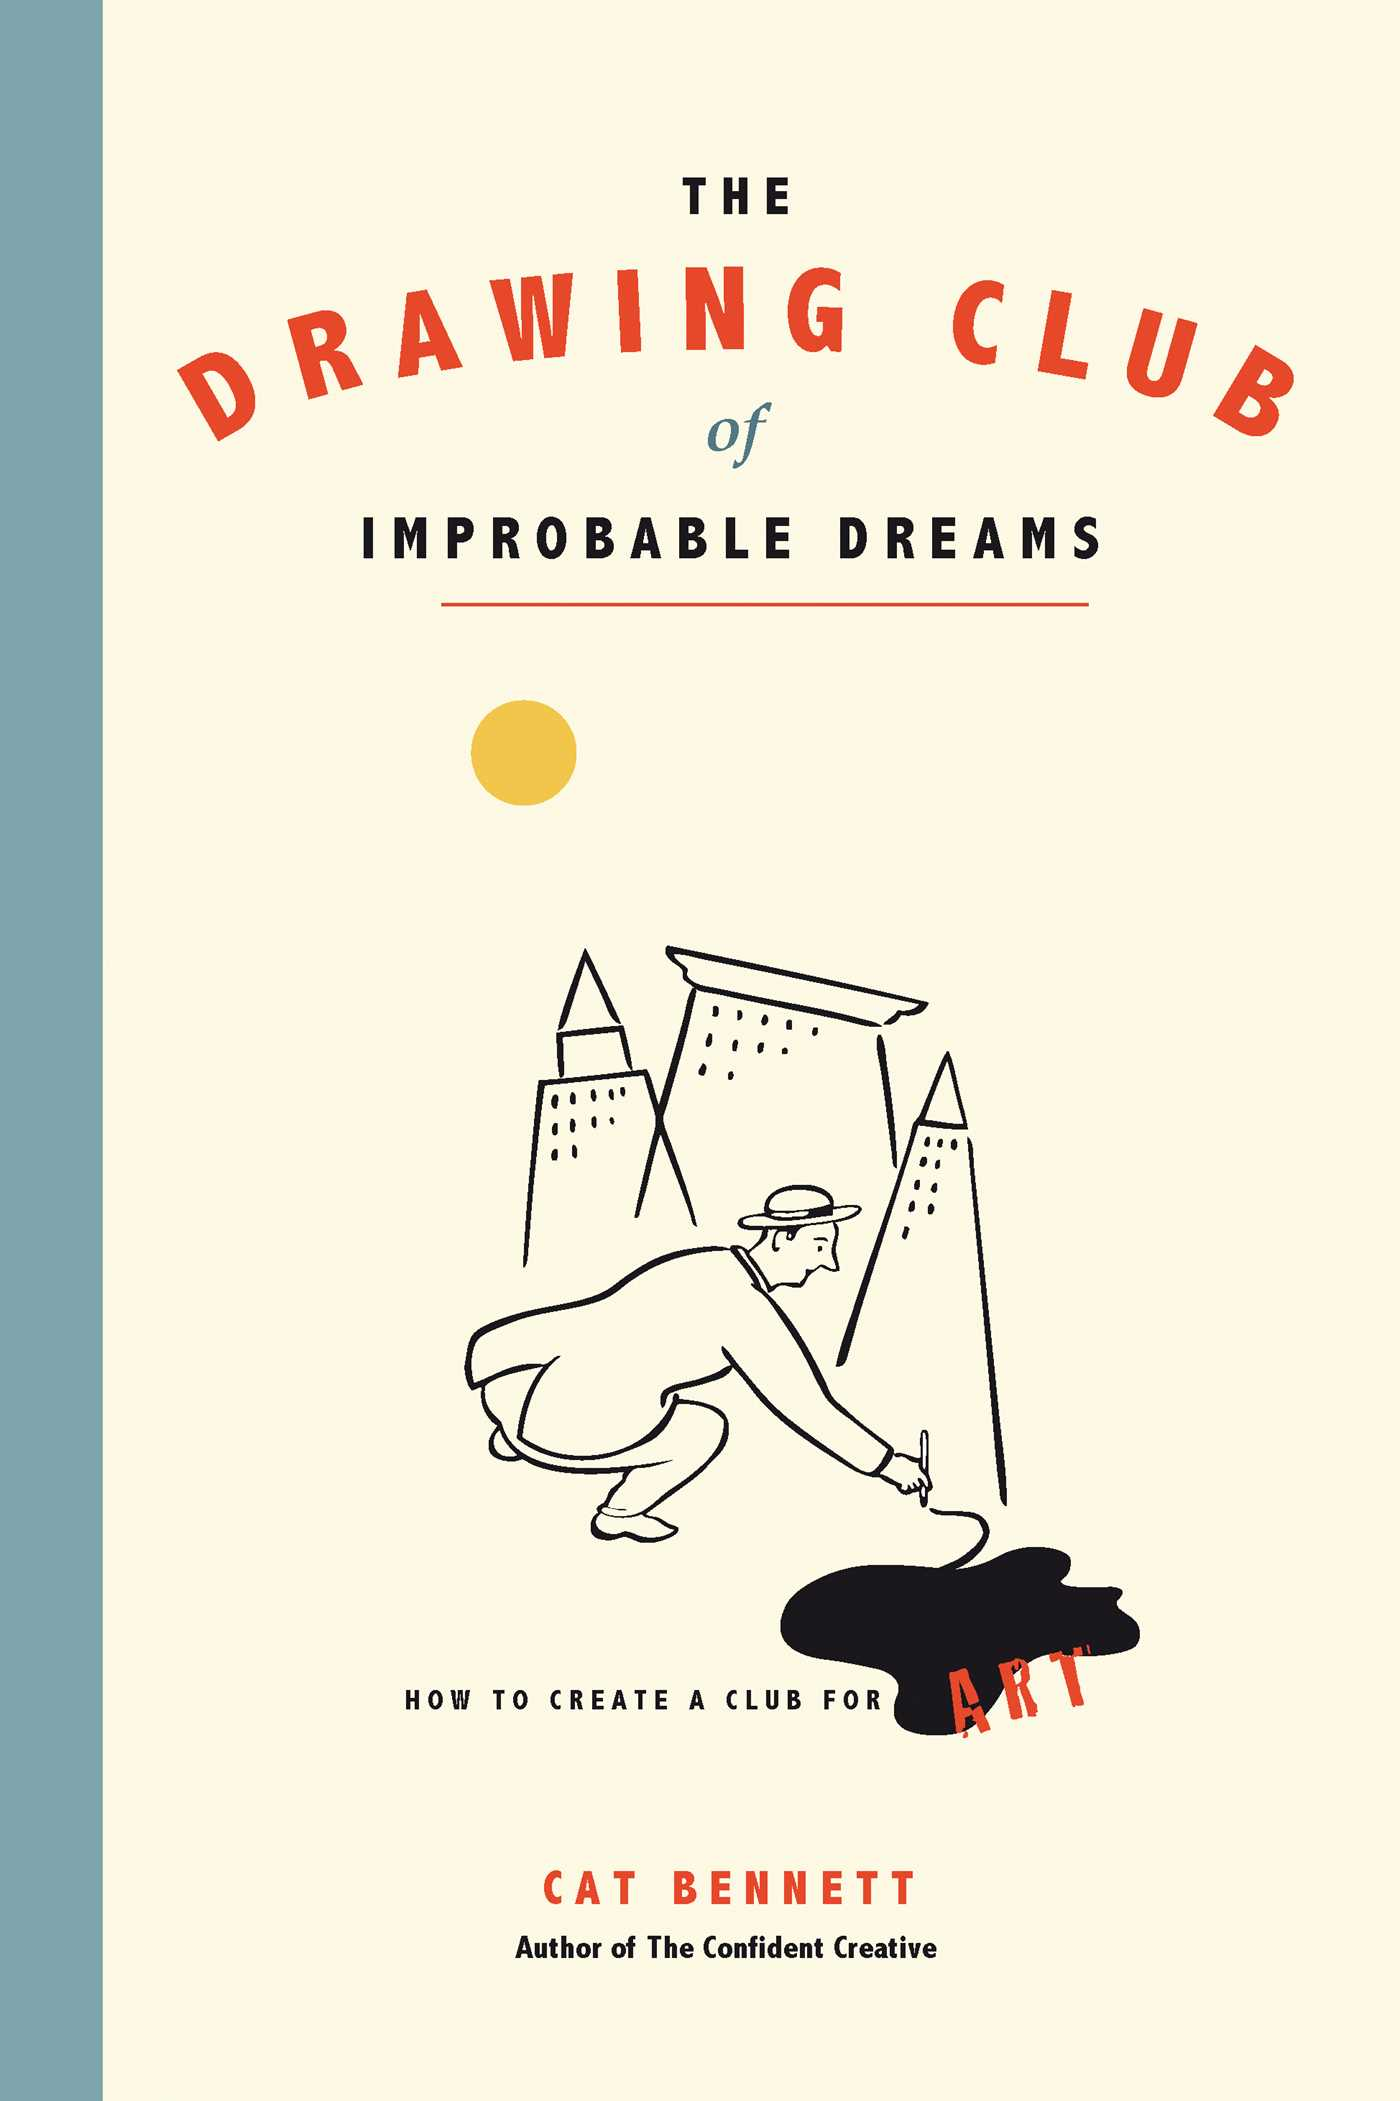 Book Cover Image (jpg): The Drawing Club of Improbable Dreams